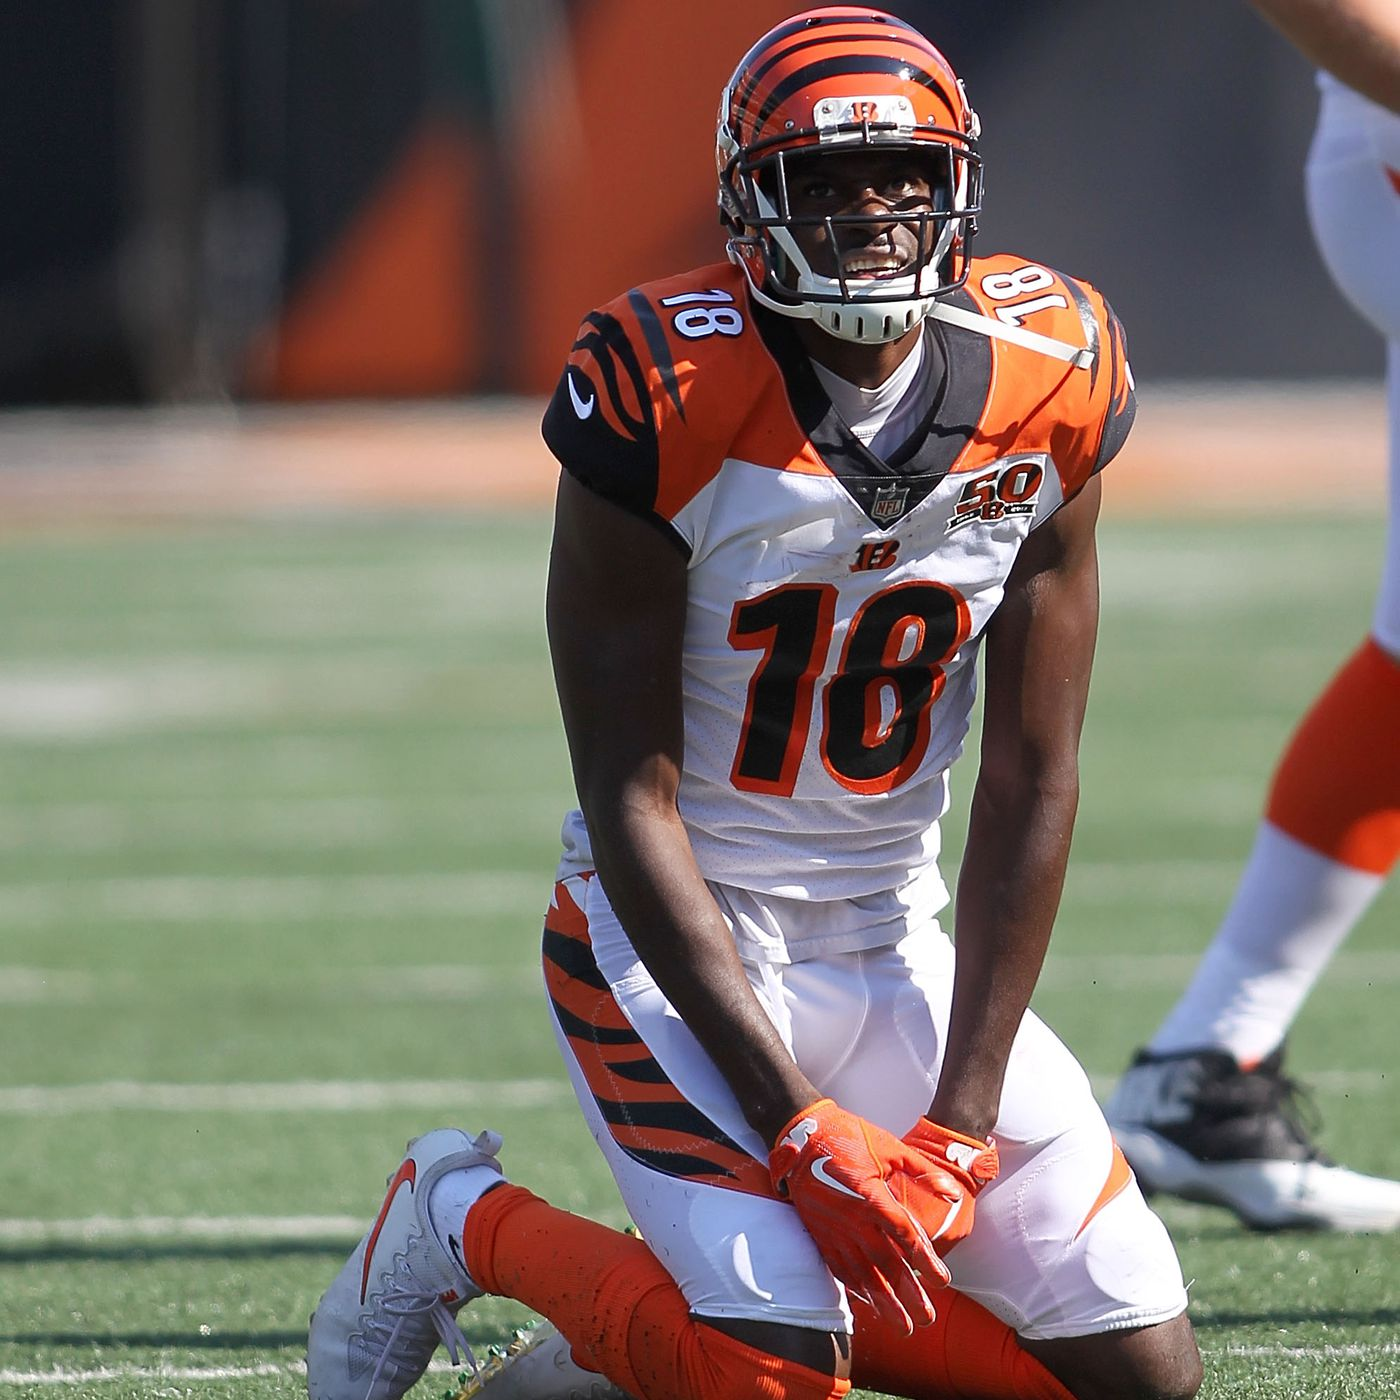 Bengals Vs Packers Espn Predicts A J Green Will Have 200 Yard Game Cincy Jungle